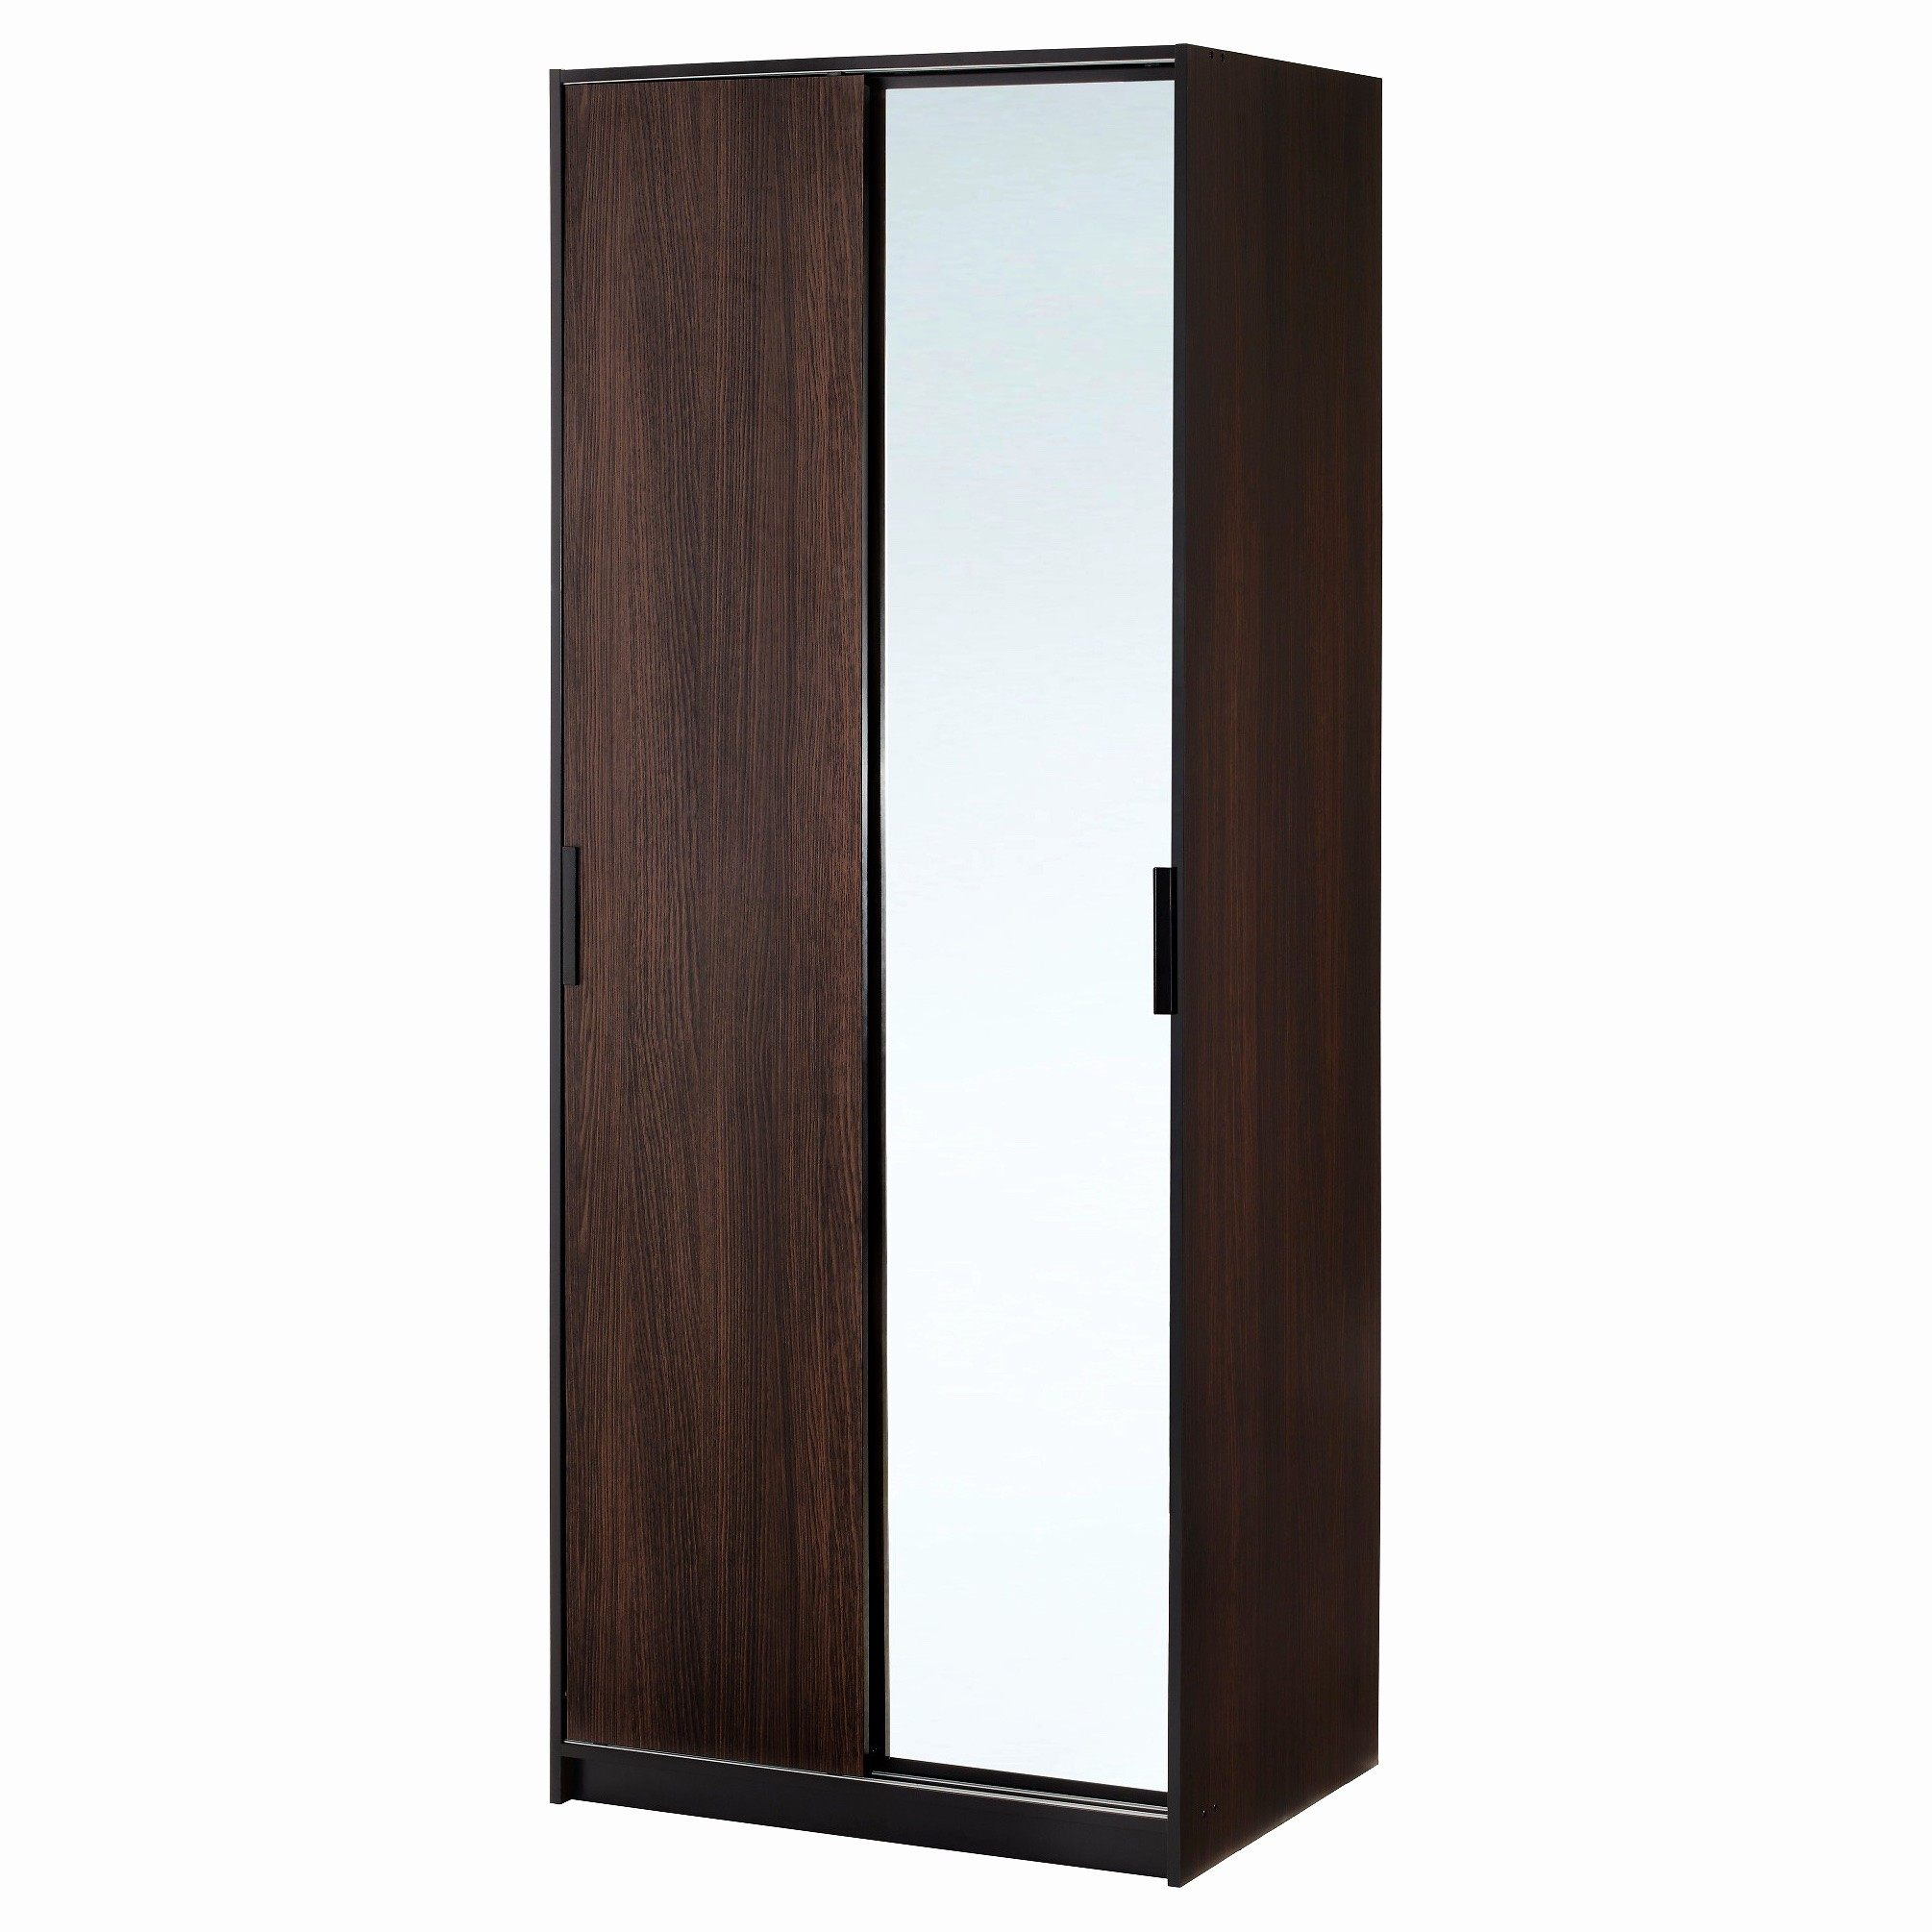 Lit Armoire Escamotable Ikea Beautiful Lit Escamotable Pas Cher Ikea